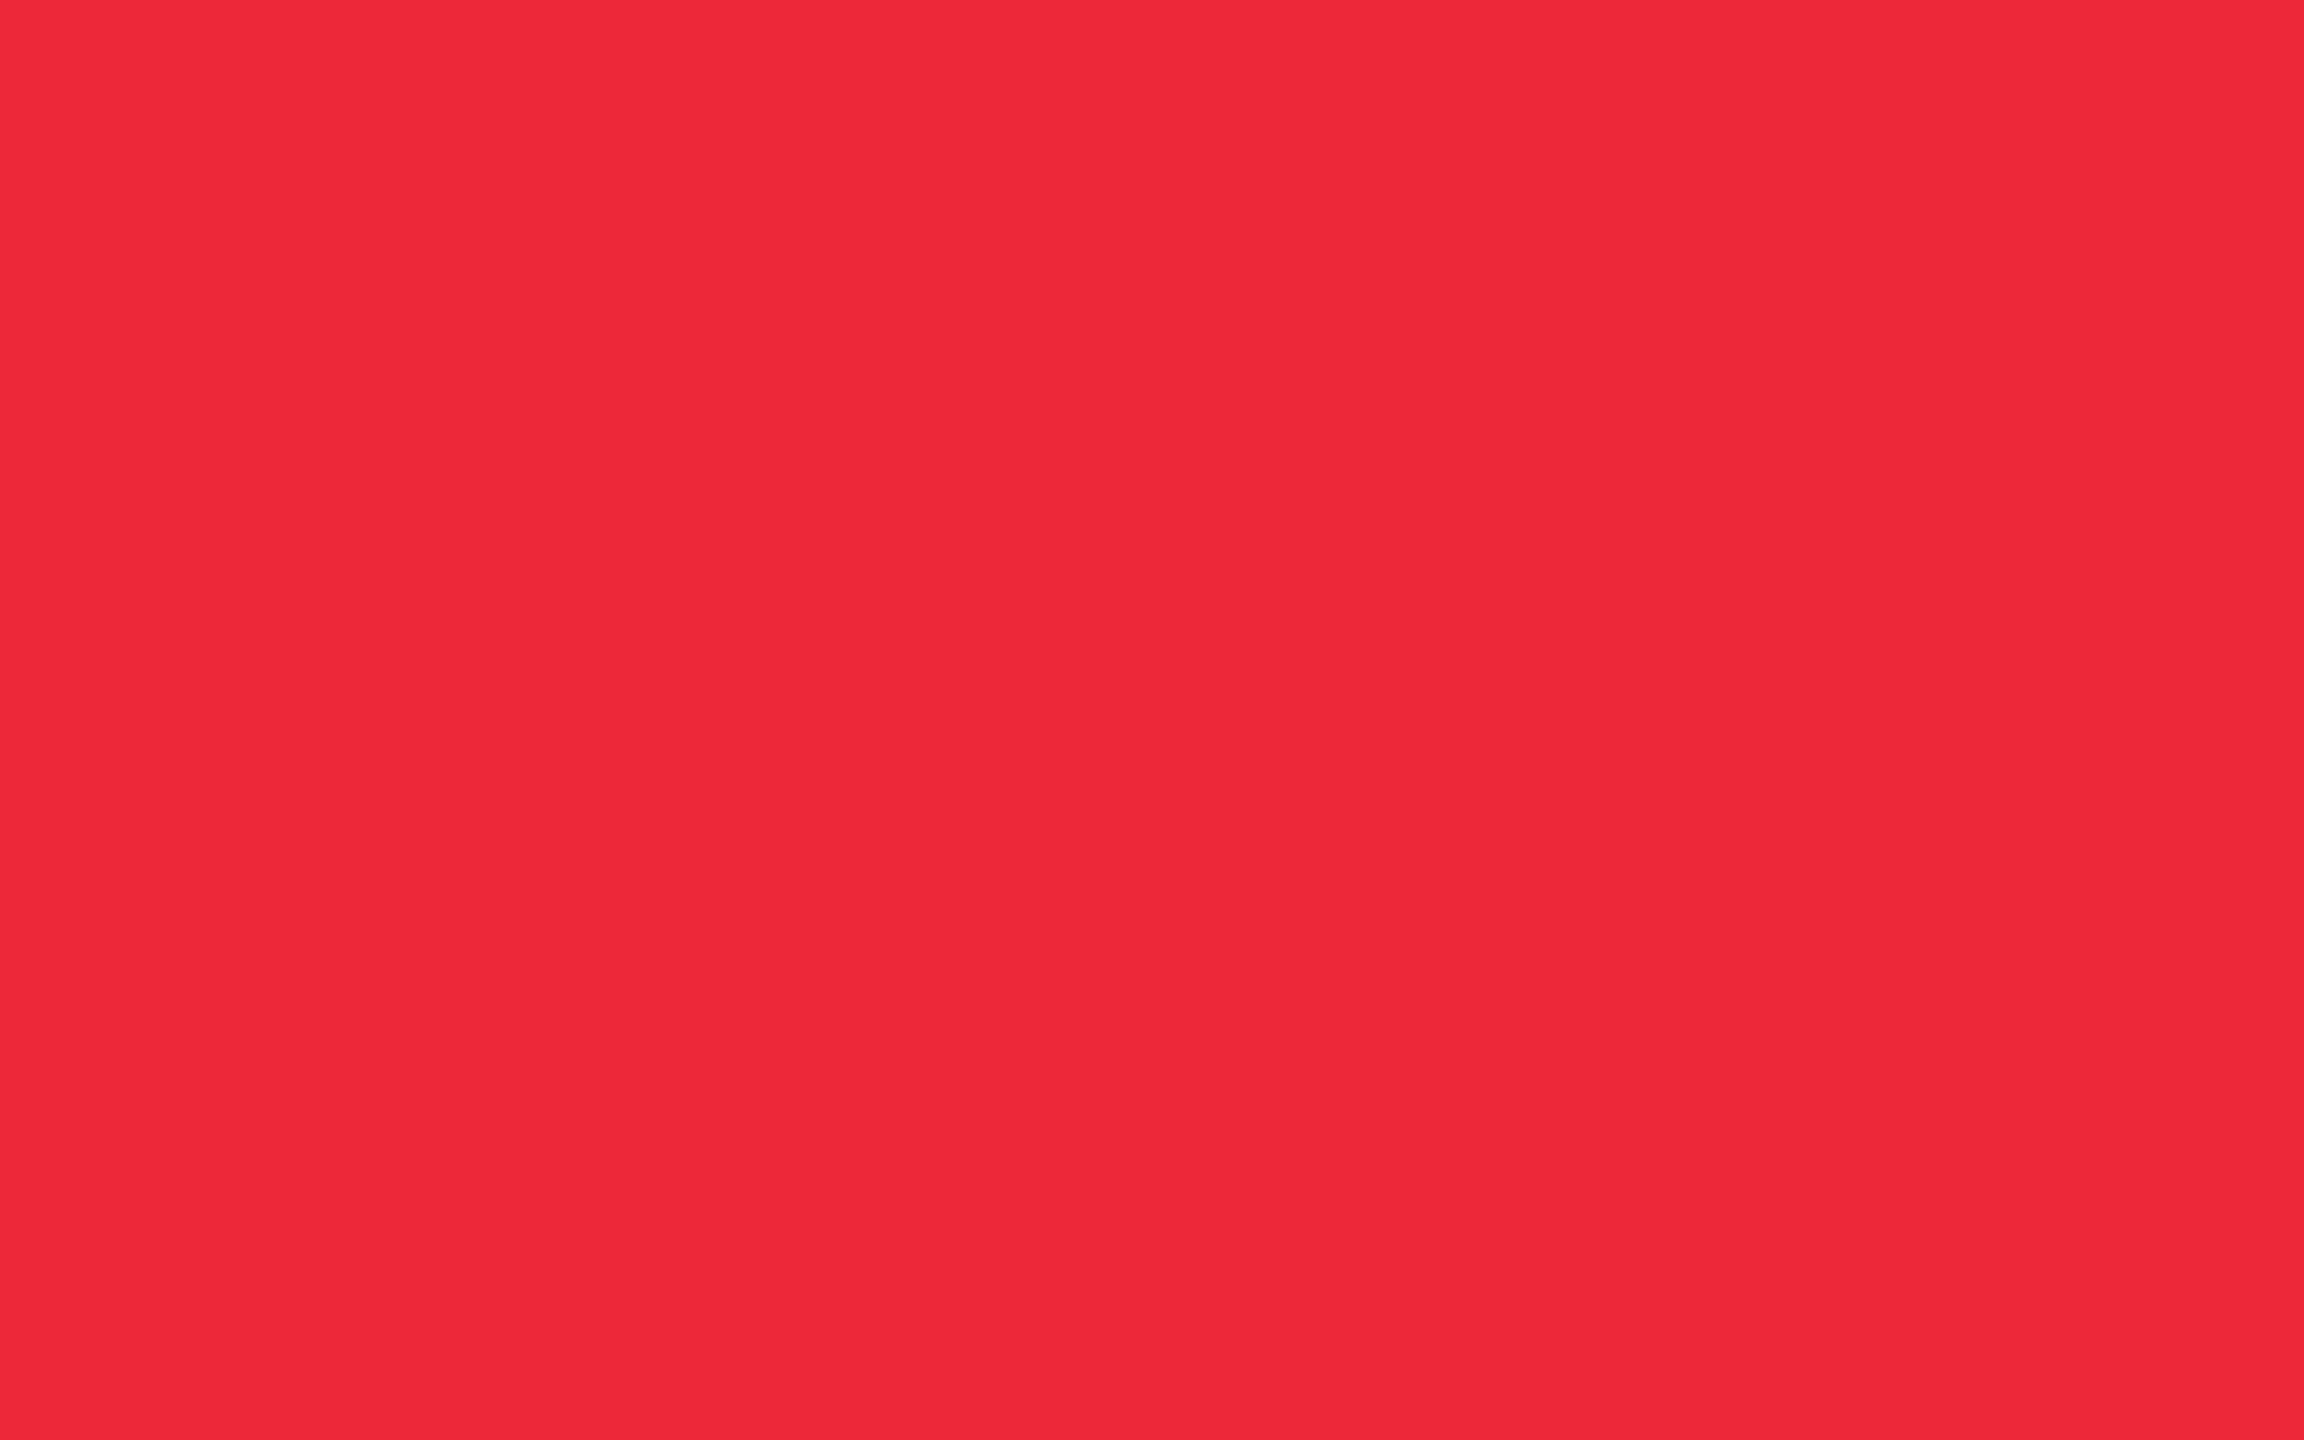 2304x1440 Imperial Red Solid Color Background